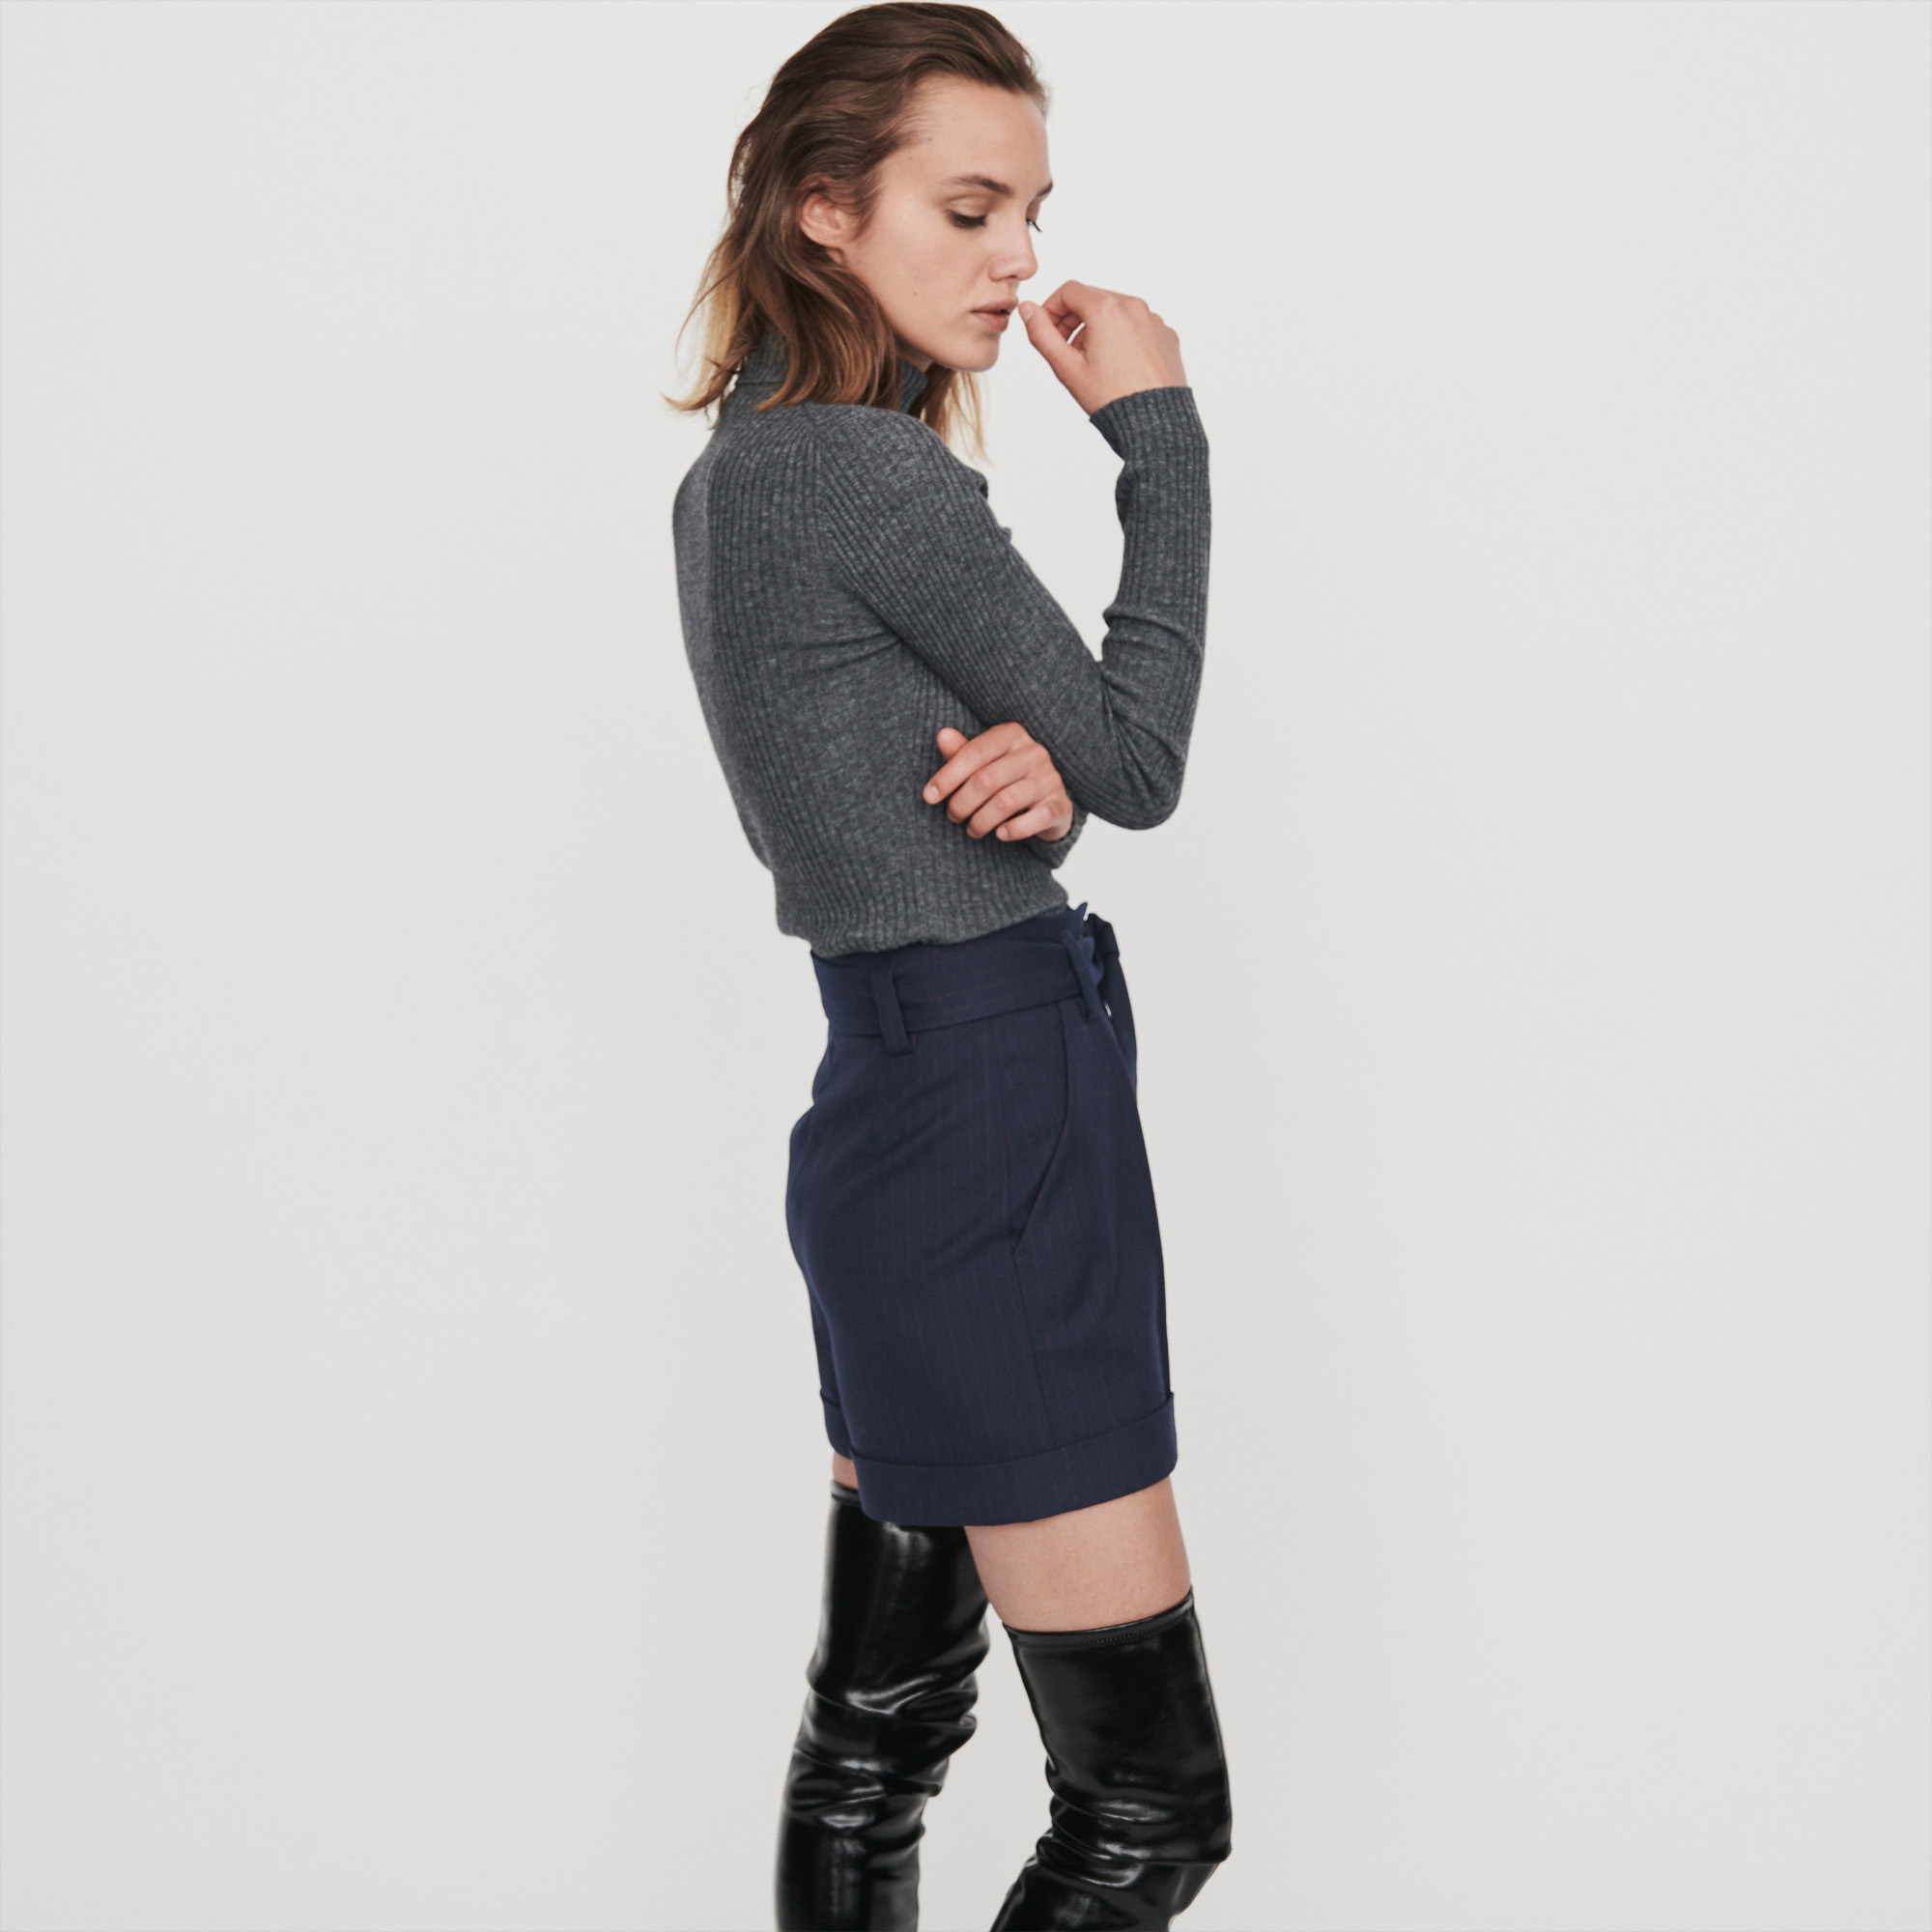 Belted Shorts With Racing Stripes - Navy